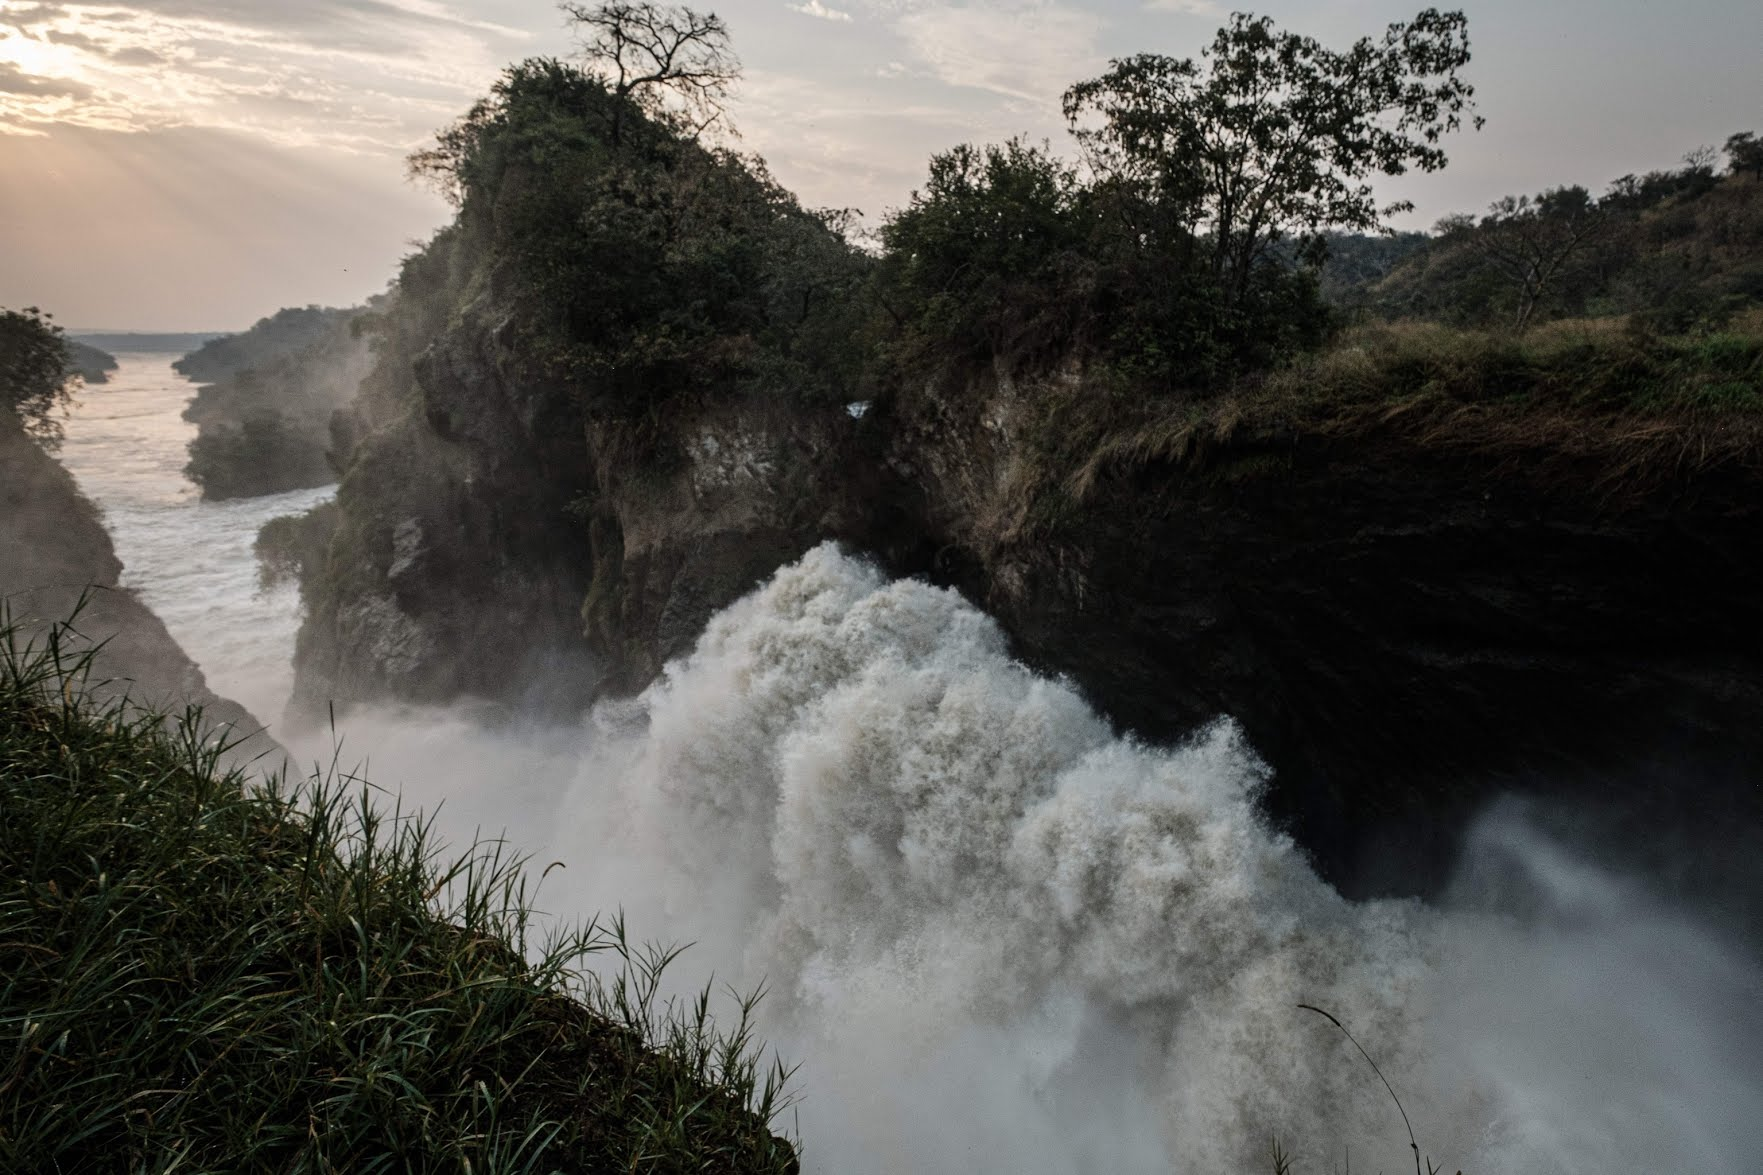 Uganda joins the right s of nature movement but won't stop oil drilling